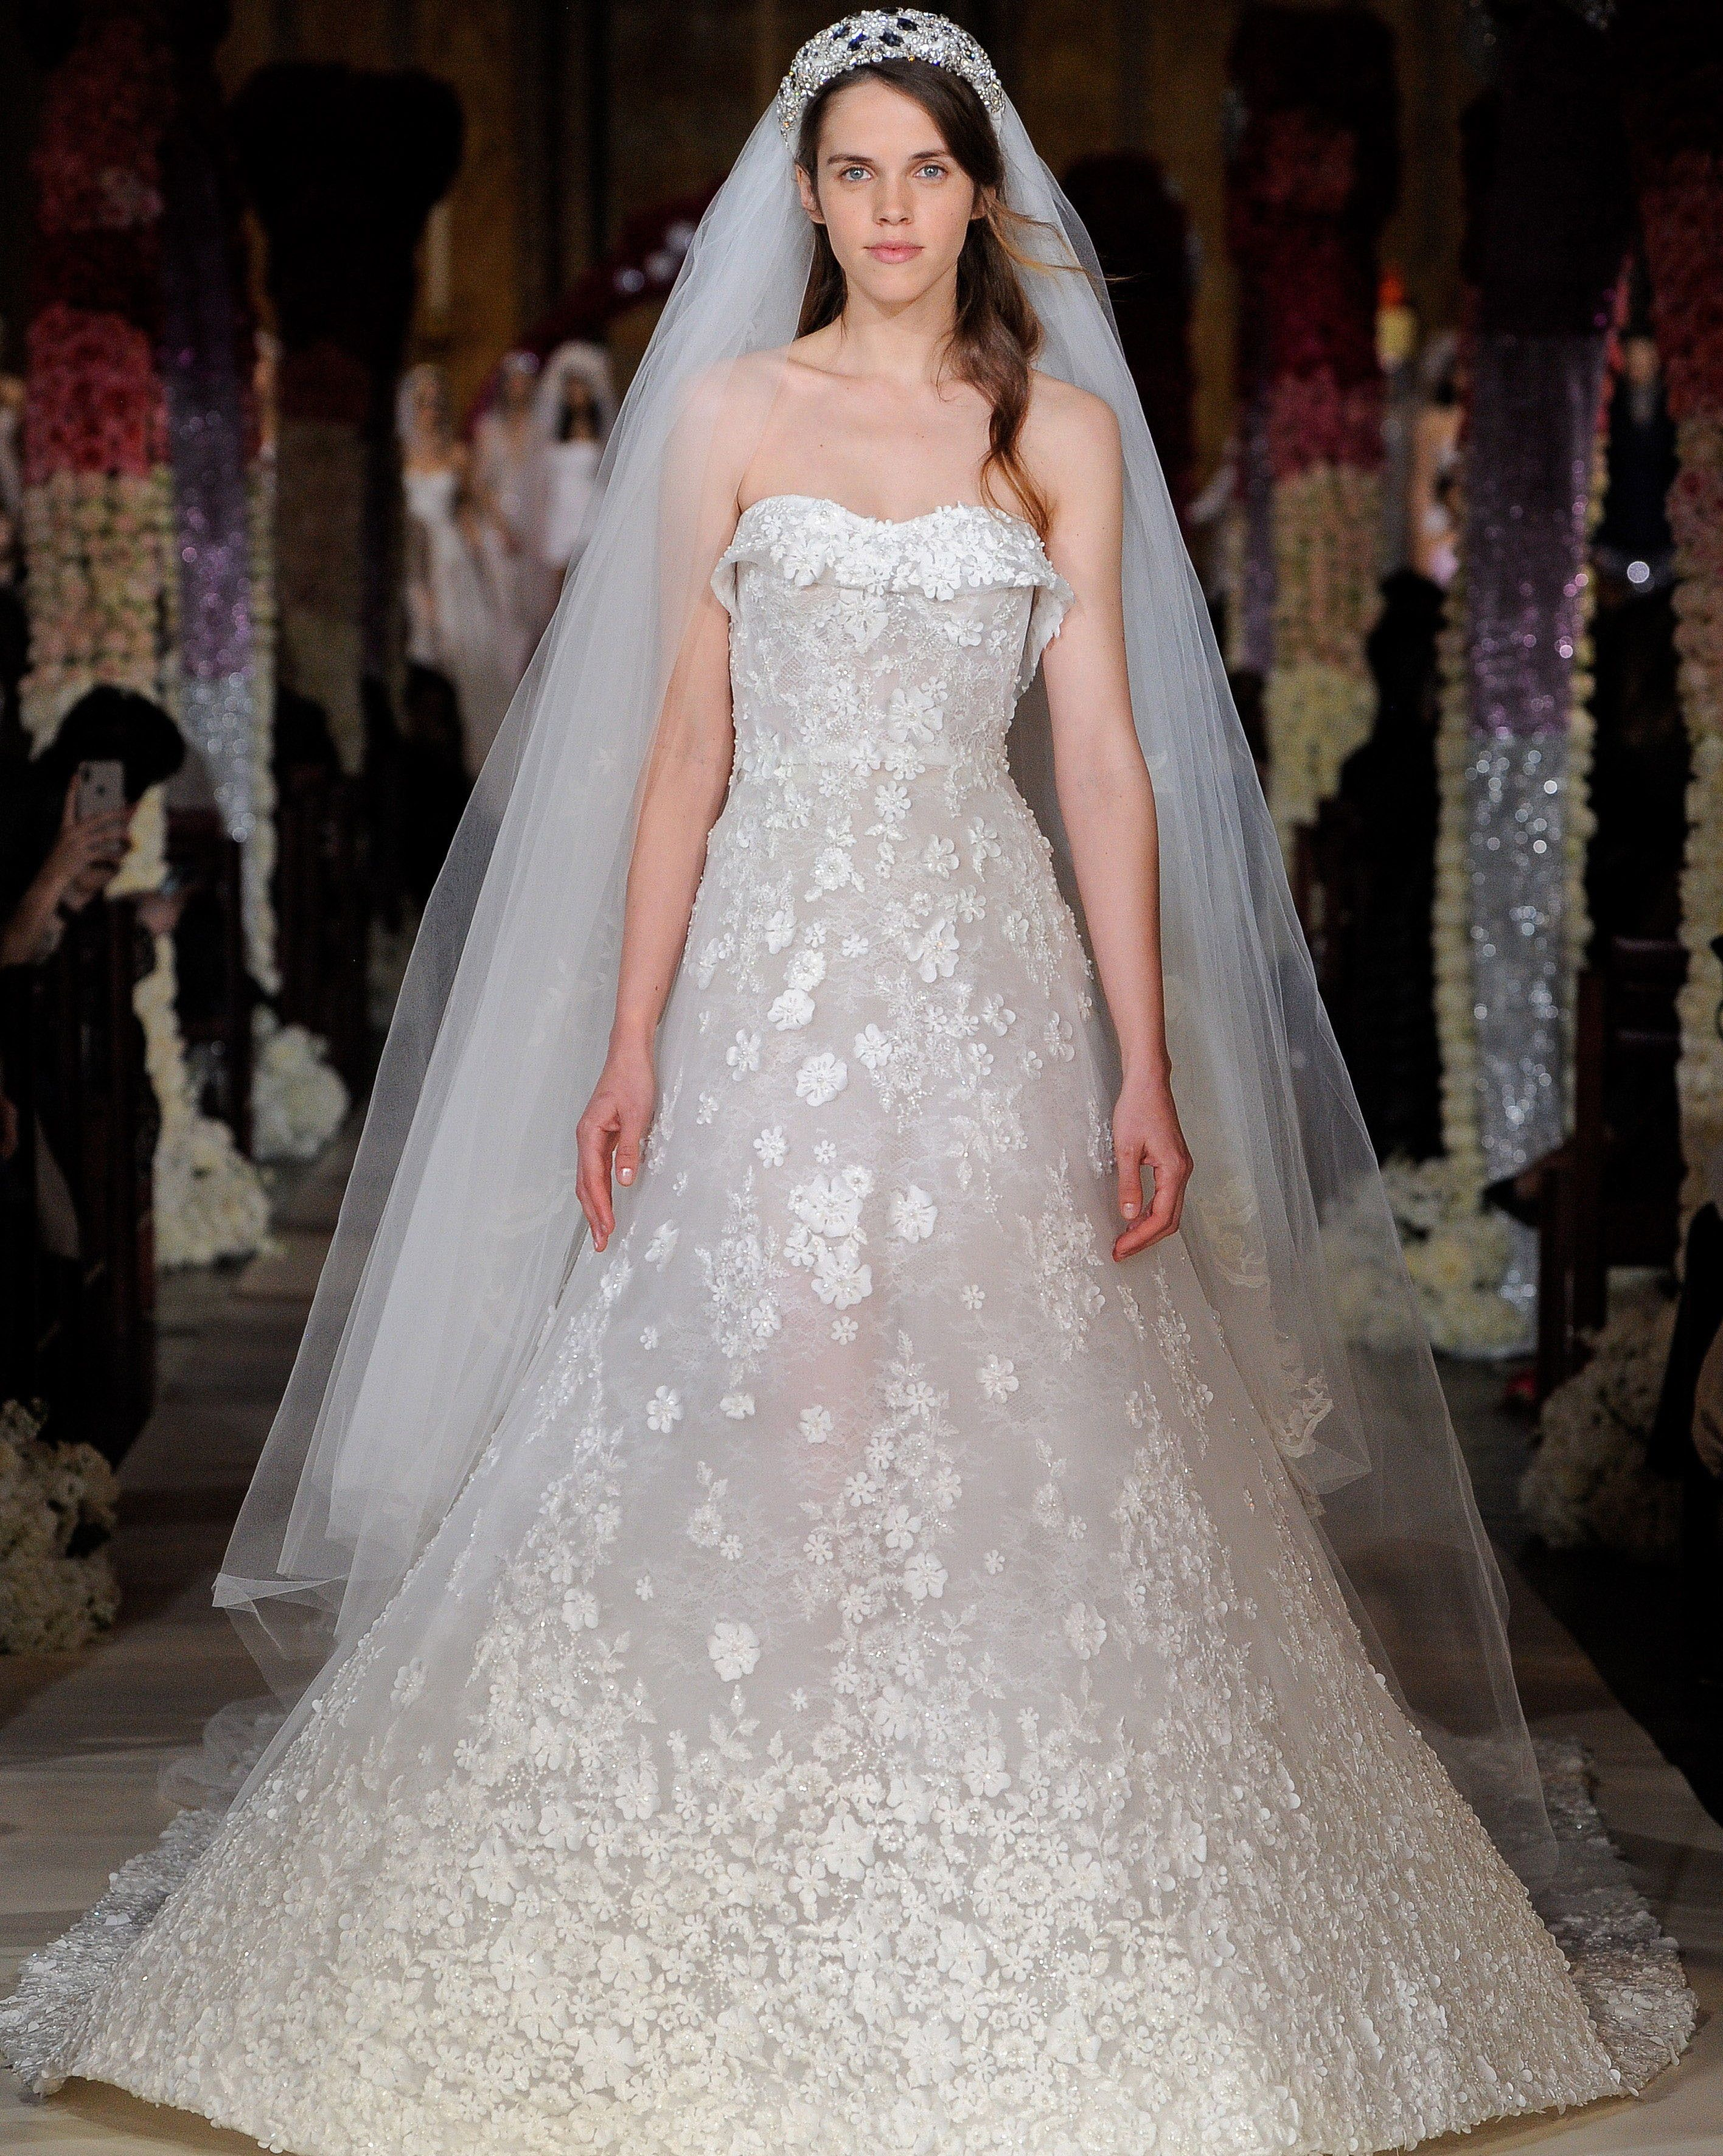 b4b3571dc1f1 Reem Acra Spring 2020: Strapless A-line wedding dress with bib top and  floral